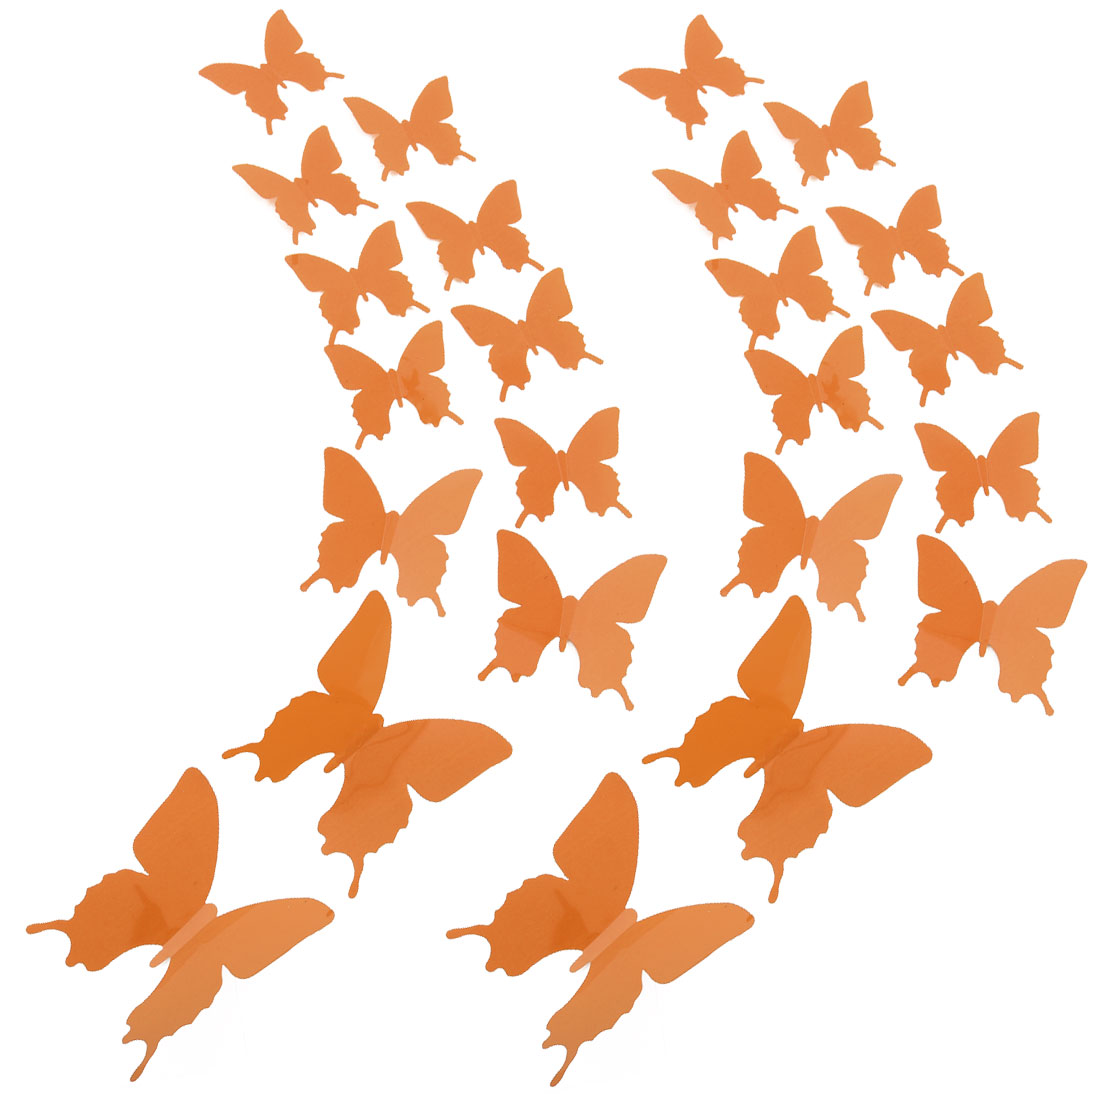 24pcs 3D Butterfly DIY Wall Sticker with Art Decals Sticker for Decor Brown